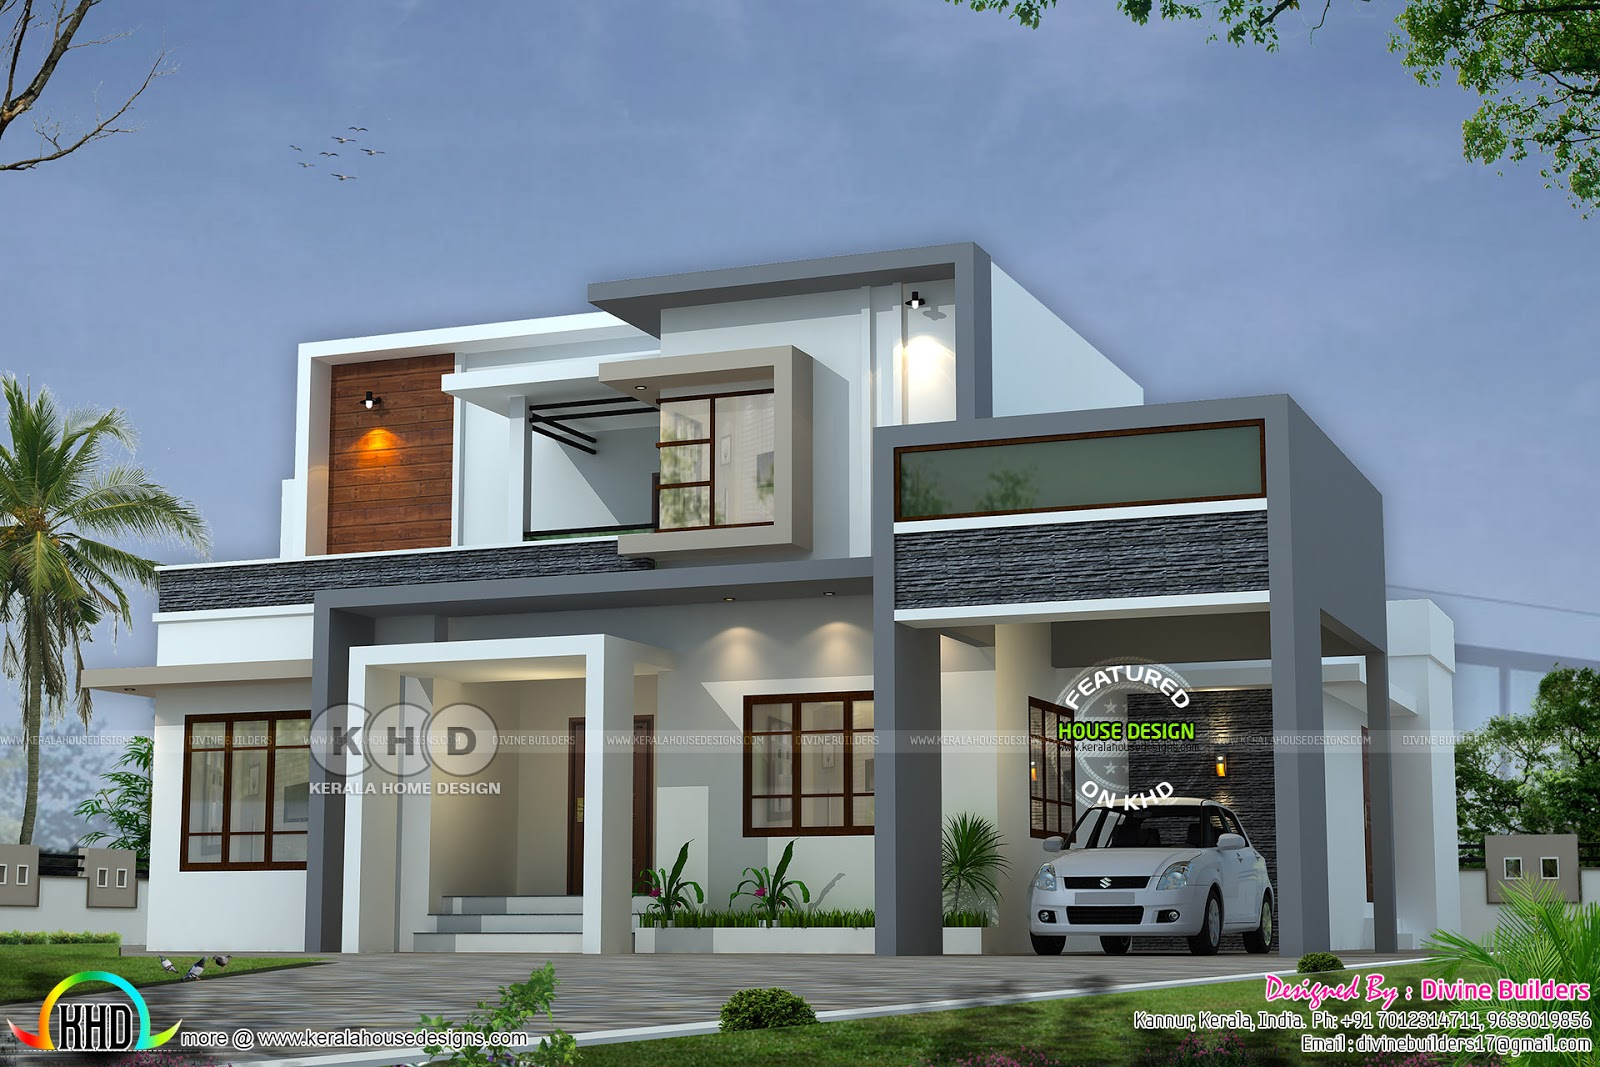 2017 kerala home design and floor plans for Homeplan designs